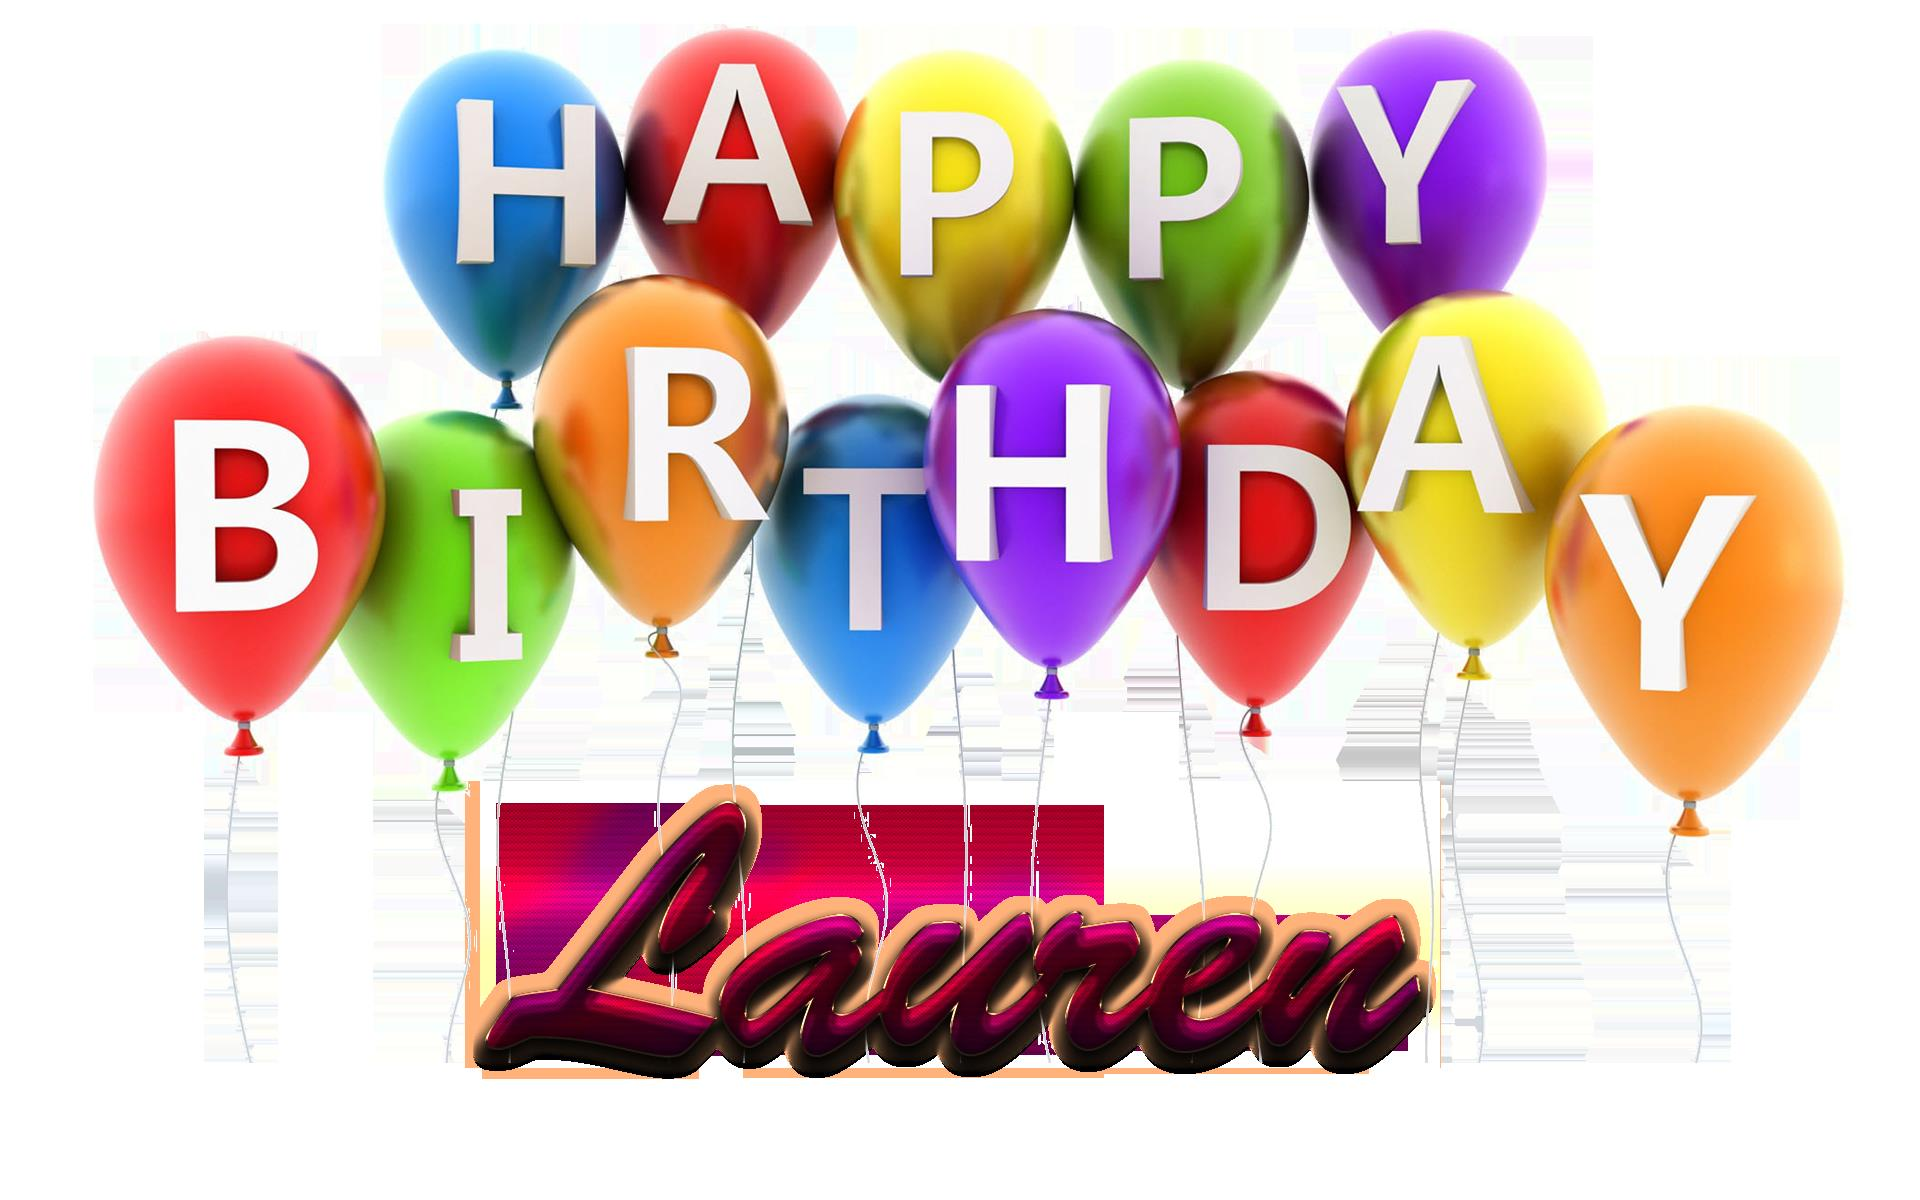 happy birthday lauren ; Lauren-Happy-Birthday-Balloons-Name-PNG